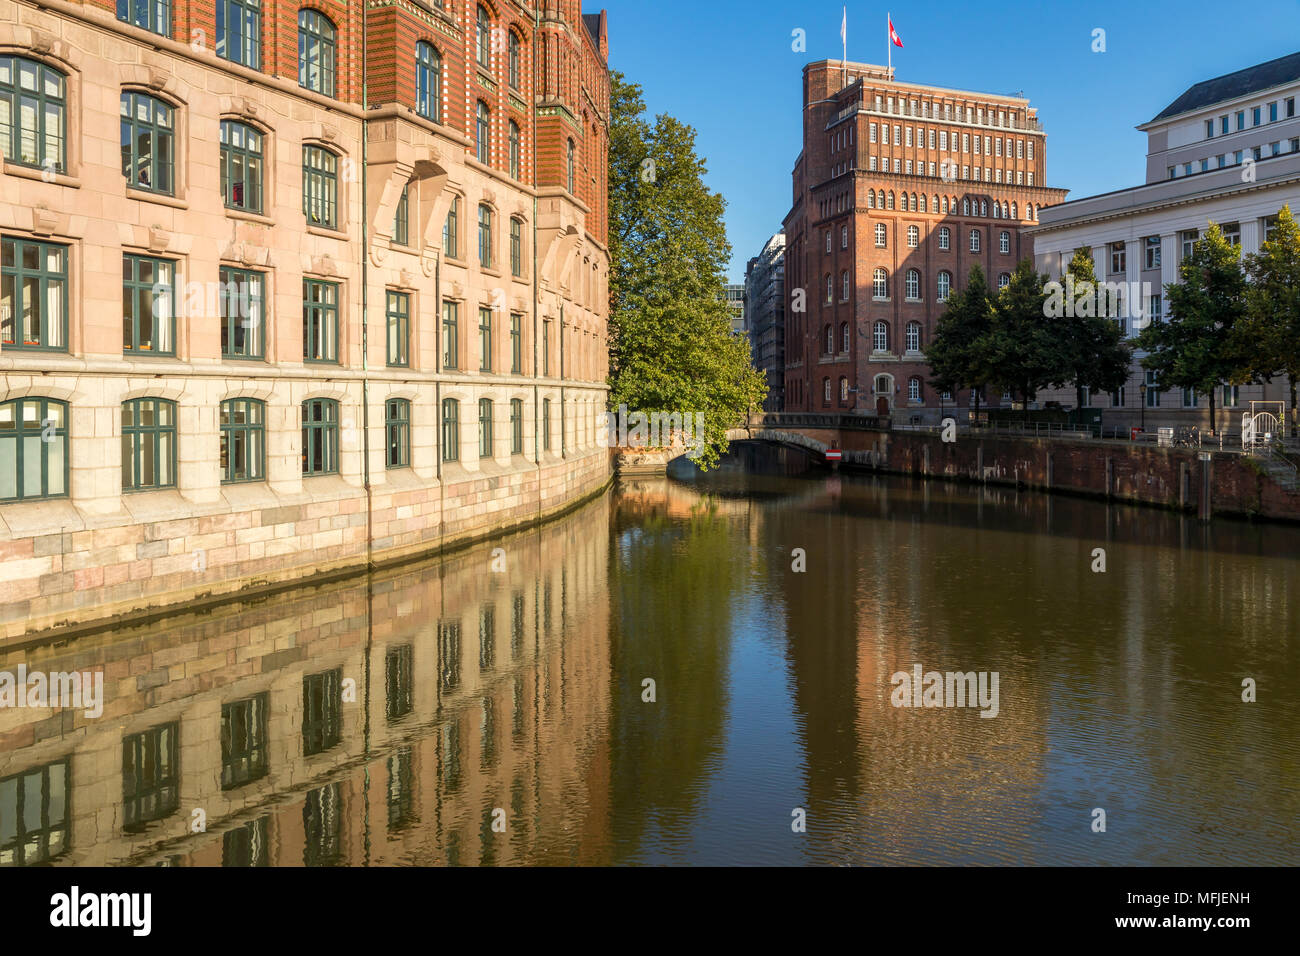 The Laeiszhof and the Patriotische Gesellschaft Kontorhaeuser in Hamburg, Germany, Europe - Stock Image